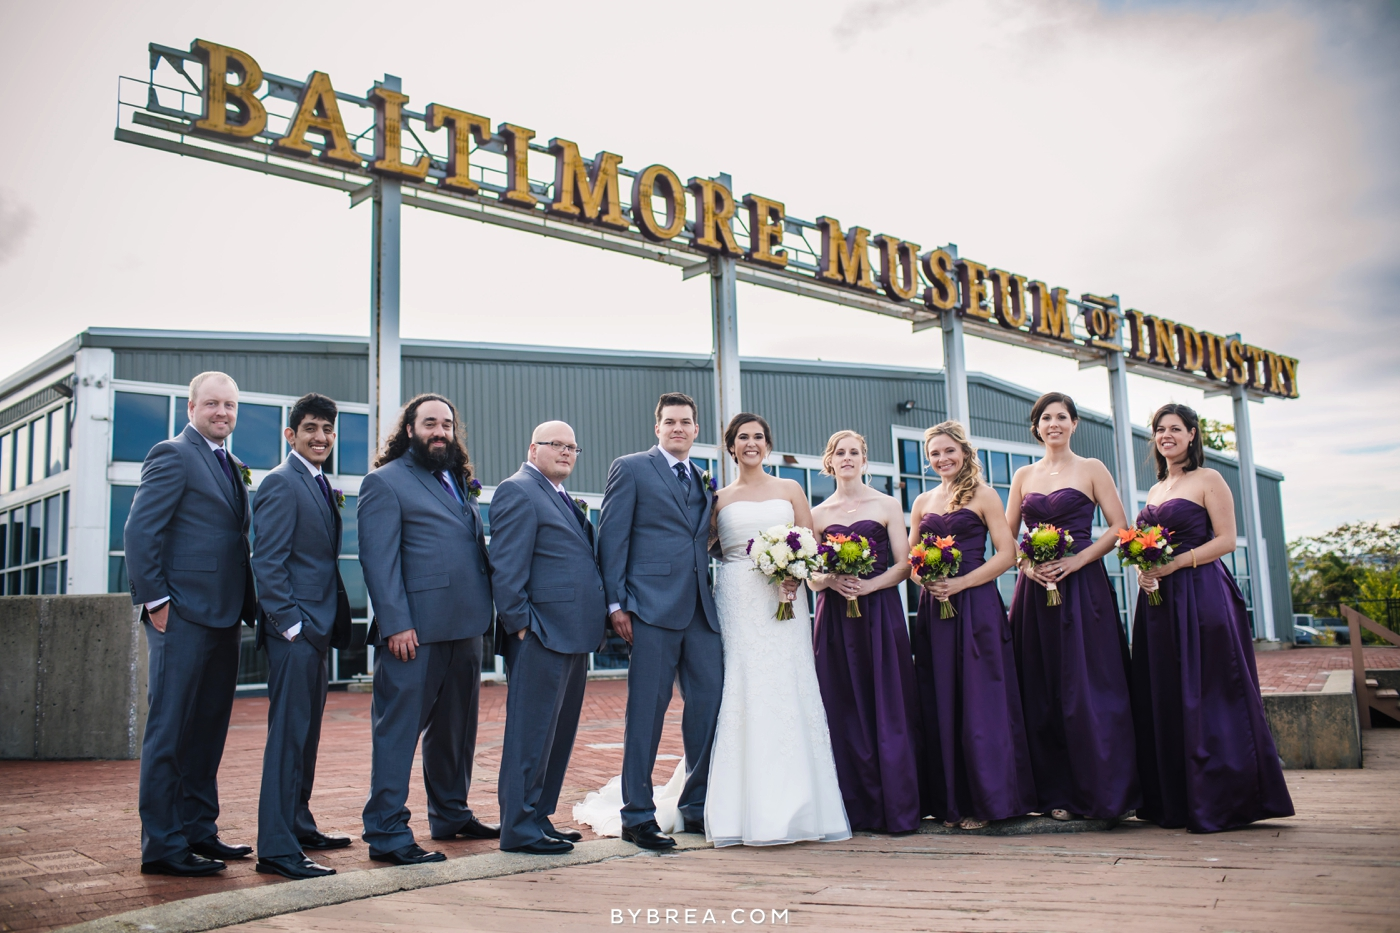 Baltimore Museum of Industry wedding photo bridal party